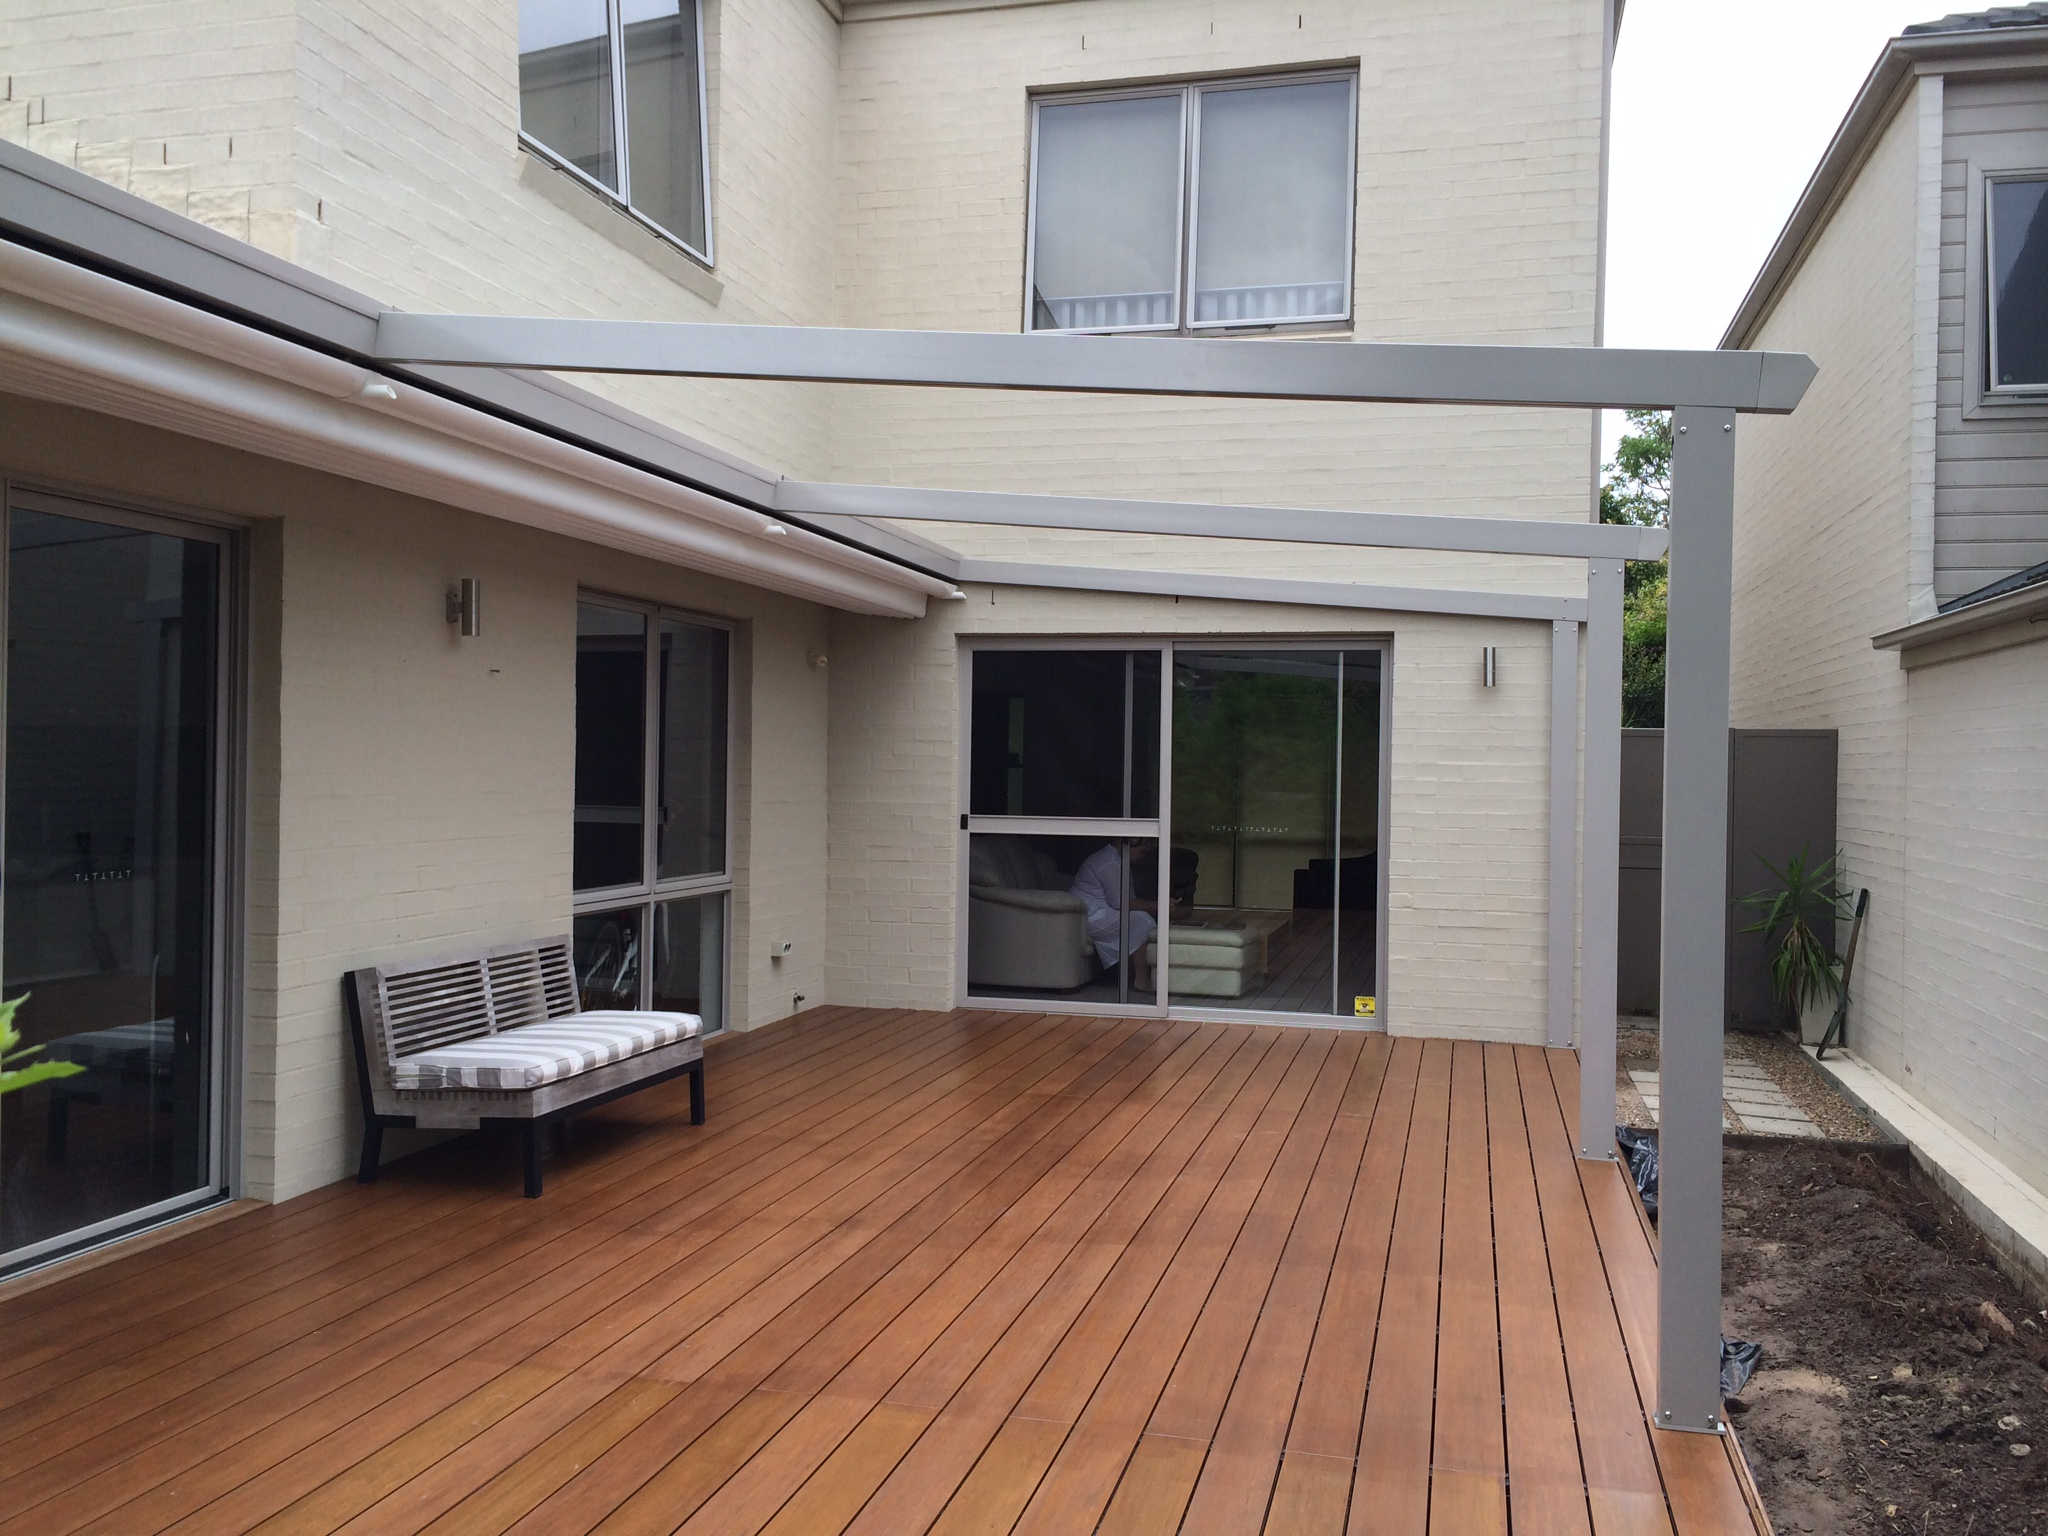 Boxspan deck frame over existing paving